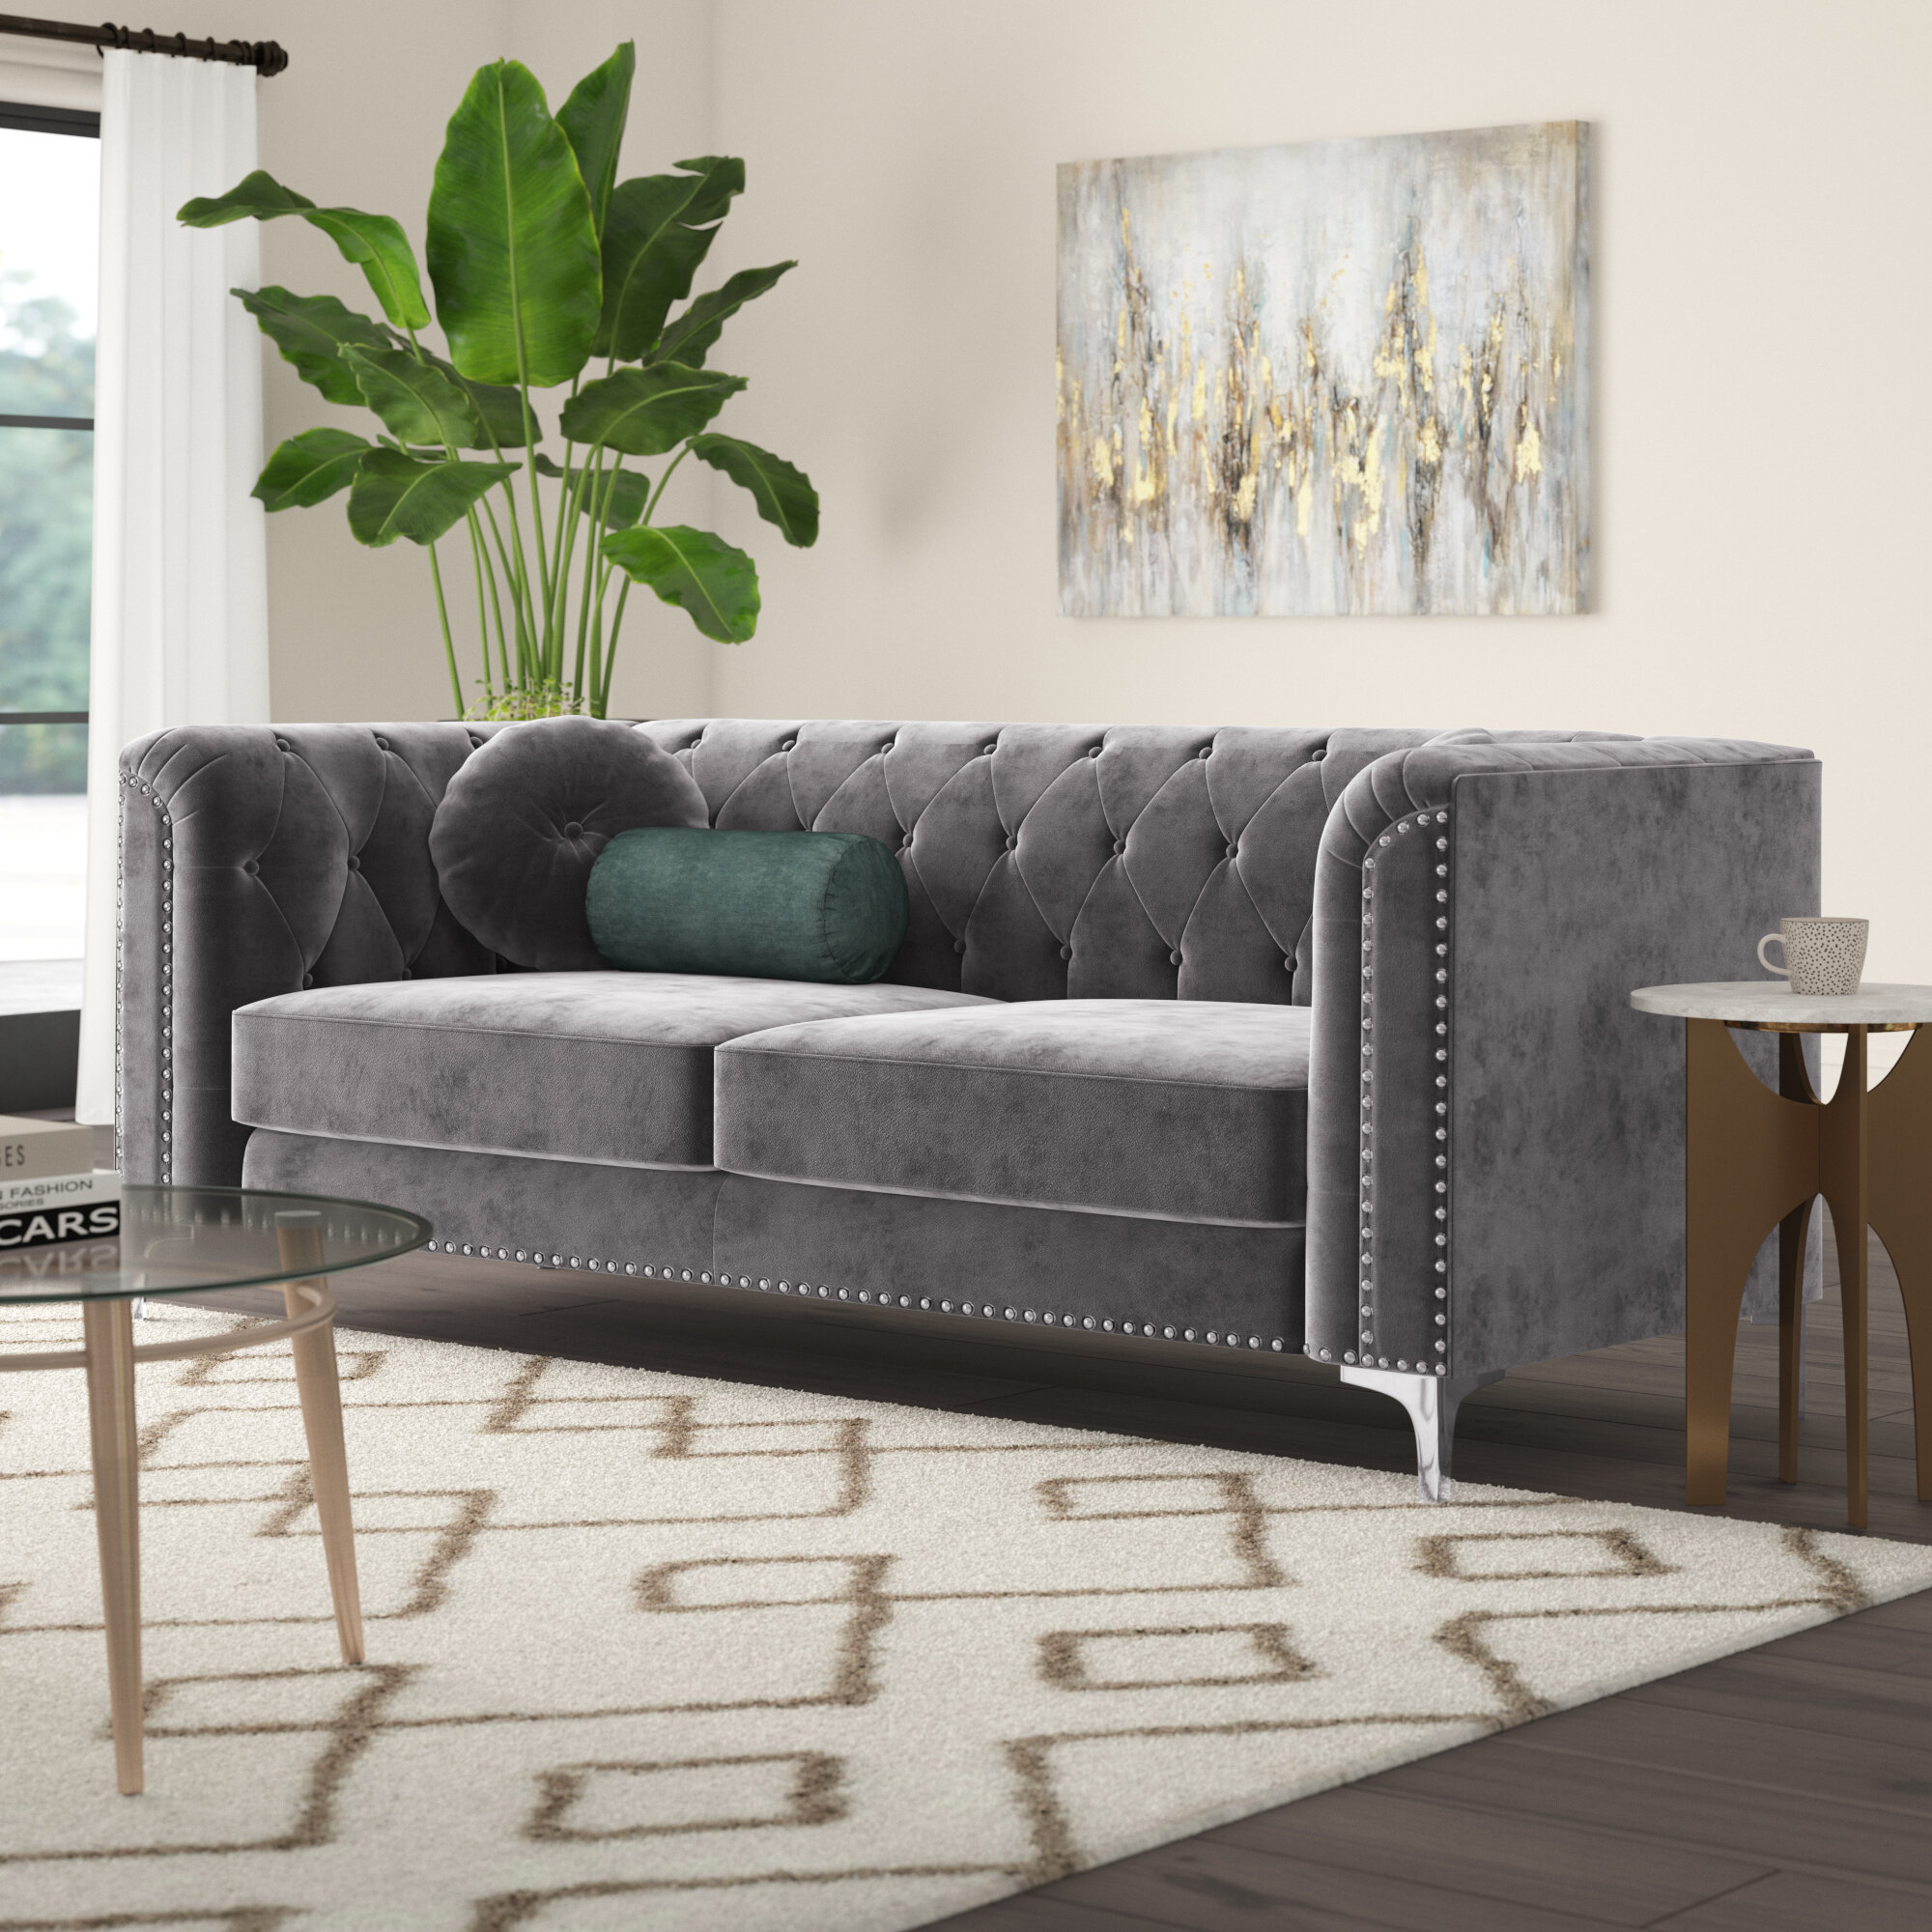 Awesome Caire Sofa Pabps2019 Chair Design Images Pabps2019Com